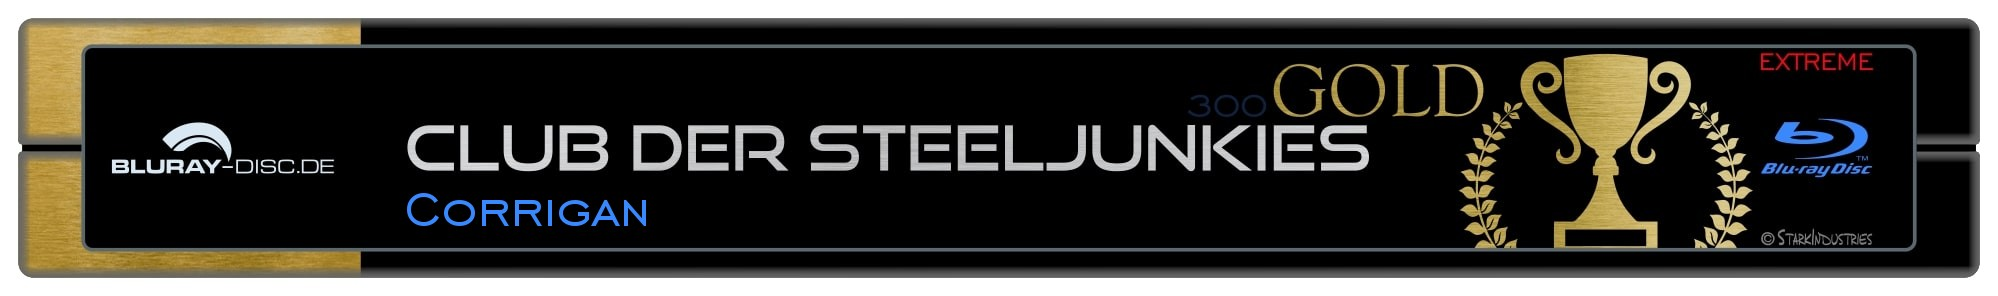 Club der Steeljunkies